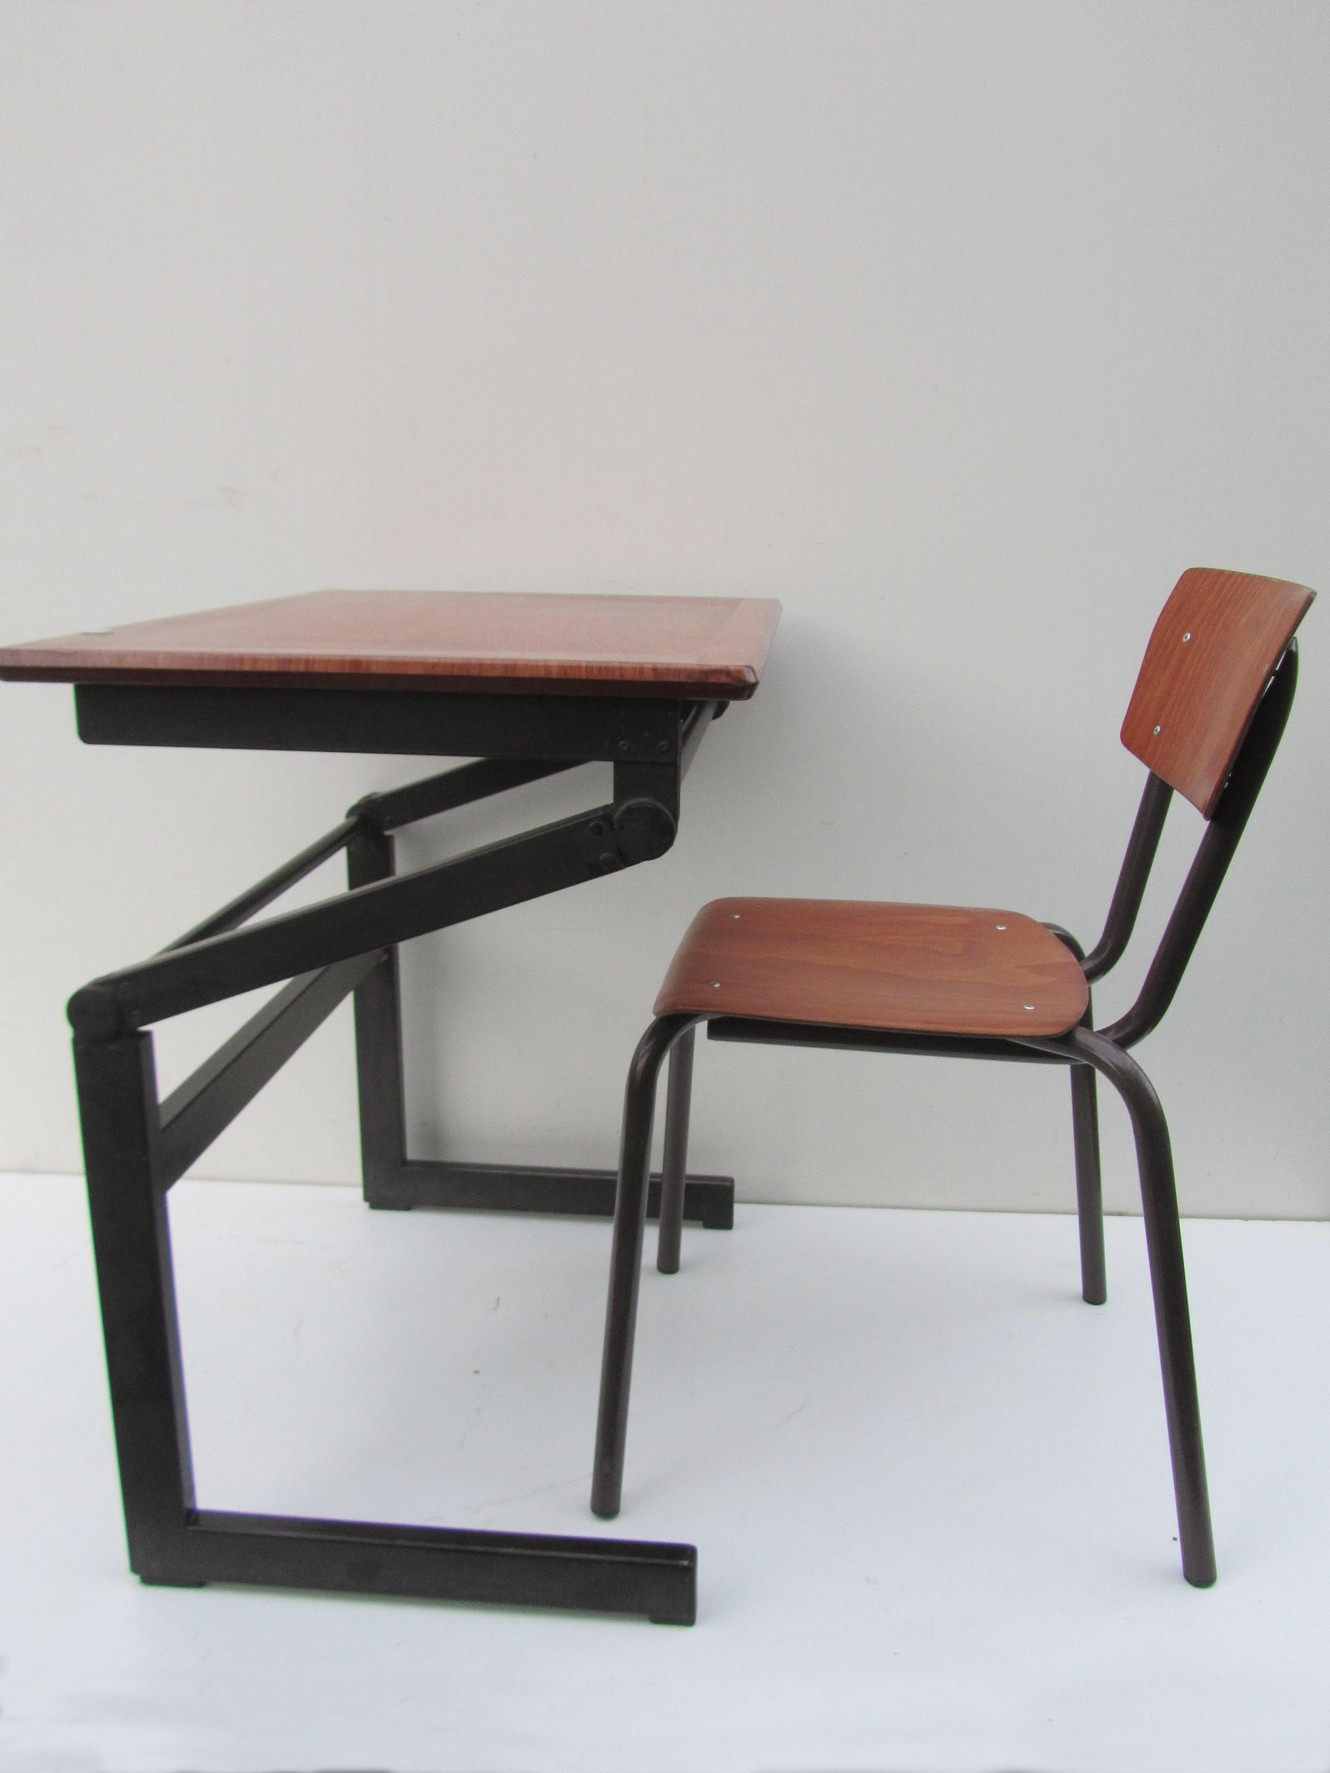 Tremendous Vintage Industrial Adjustable Plywood Desk Ocoug Best Dining Table And Chair Ideas Images Ocougorg